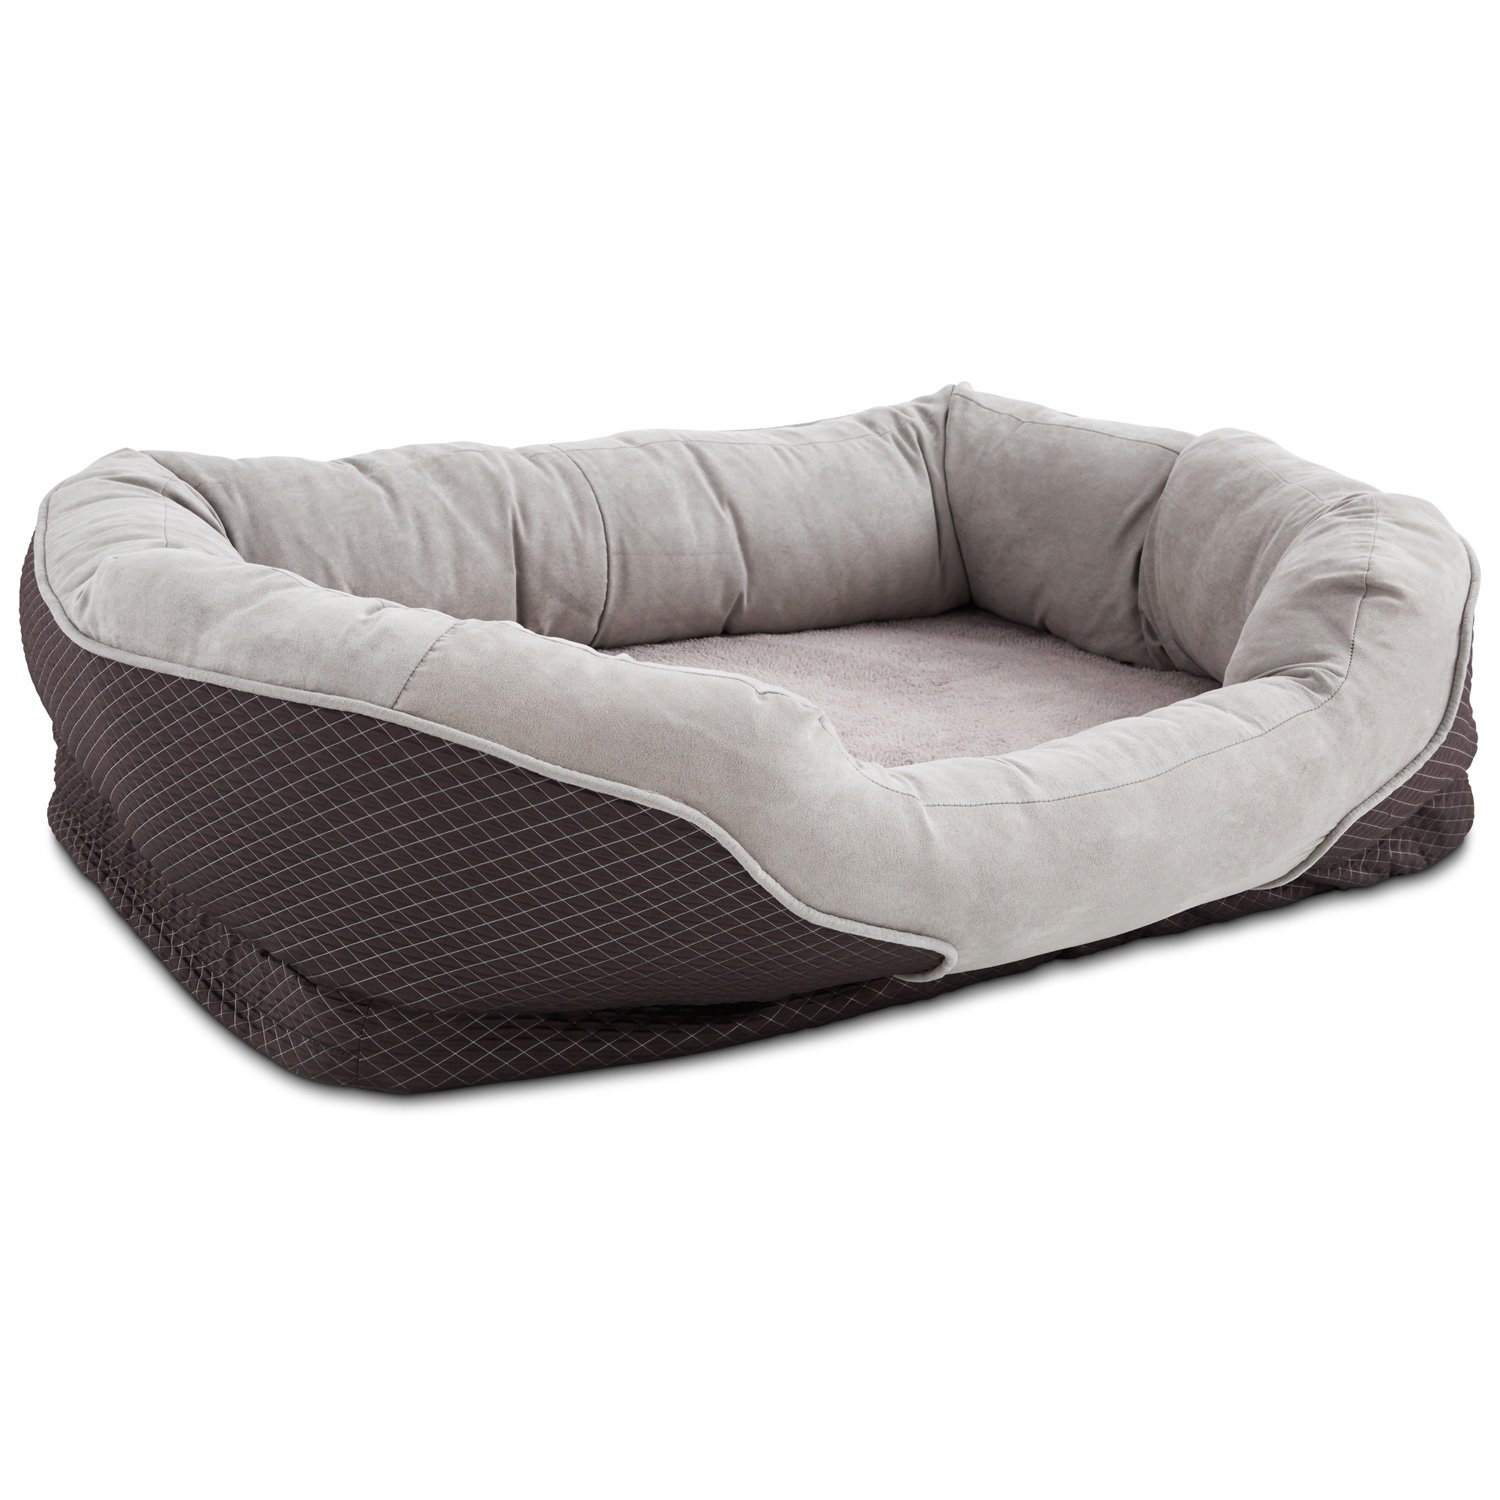 Couch Dog Bed Sale